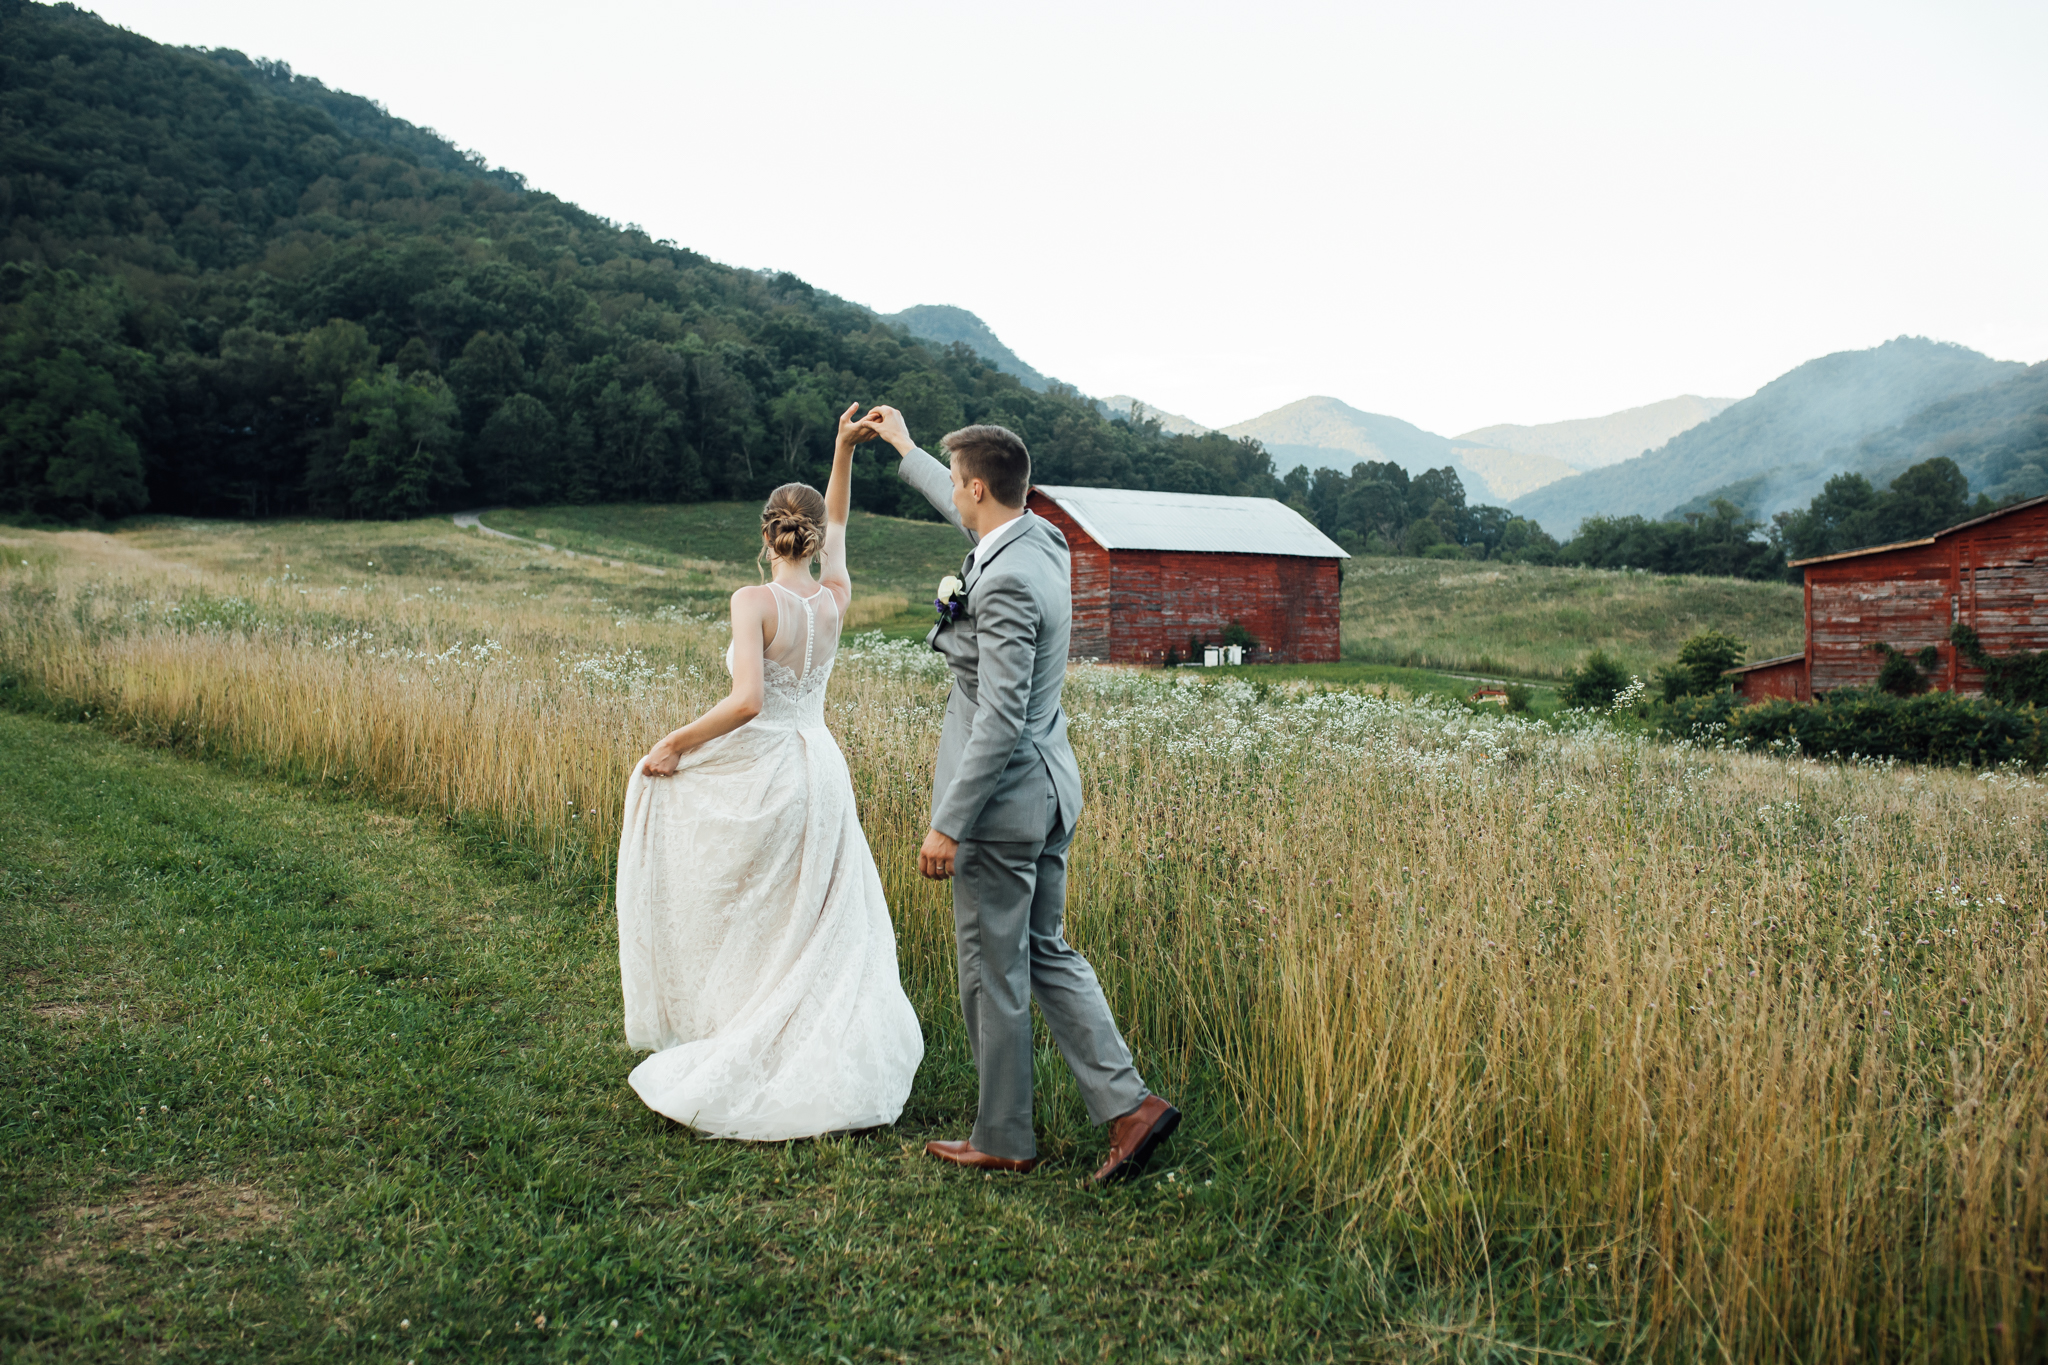 ashville-wedding-photographers-thewarmtharoundyou--backyard-asheville-wedding-mountain-wedding (215 of 244).jpg